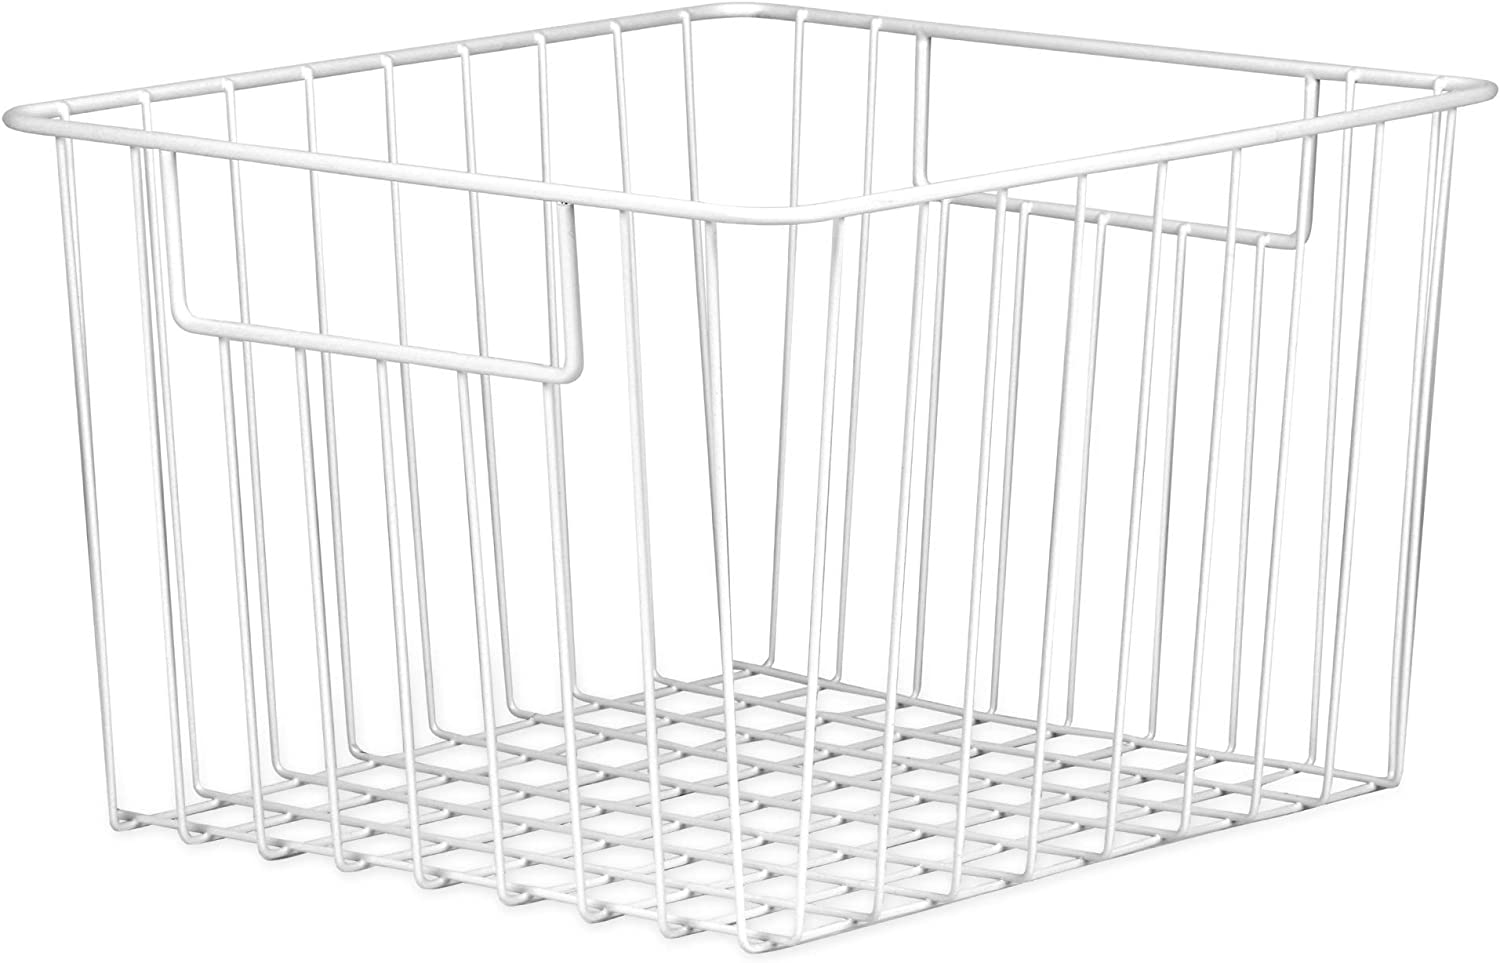 Pack of 2 Mesh Storage Baskets | Wire Organiser Bins | Multi Purpose Wire Shelves | Bedroom, Kitchen or Bathroom Storage | M&W